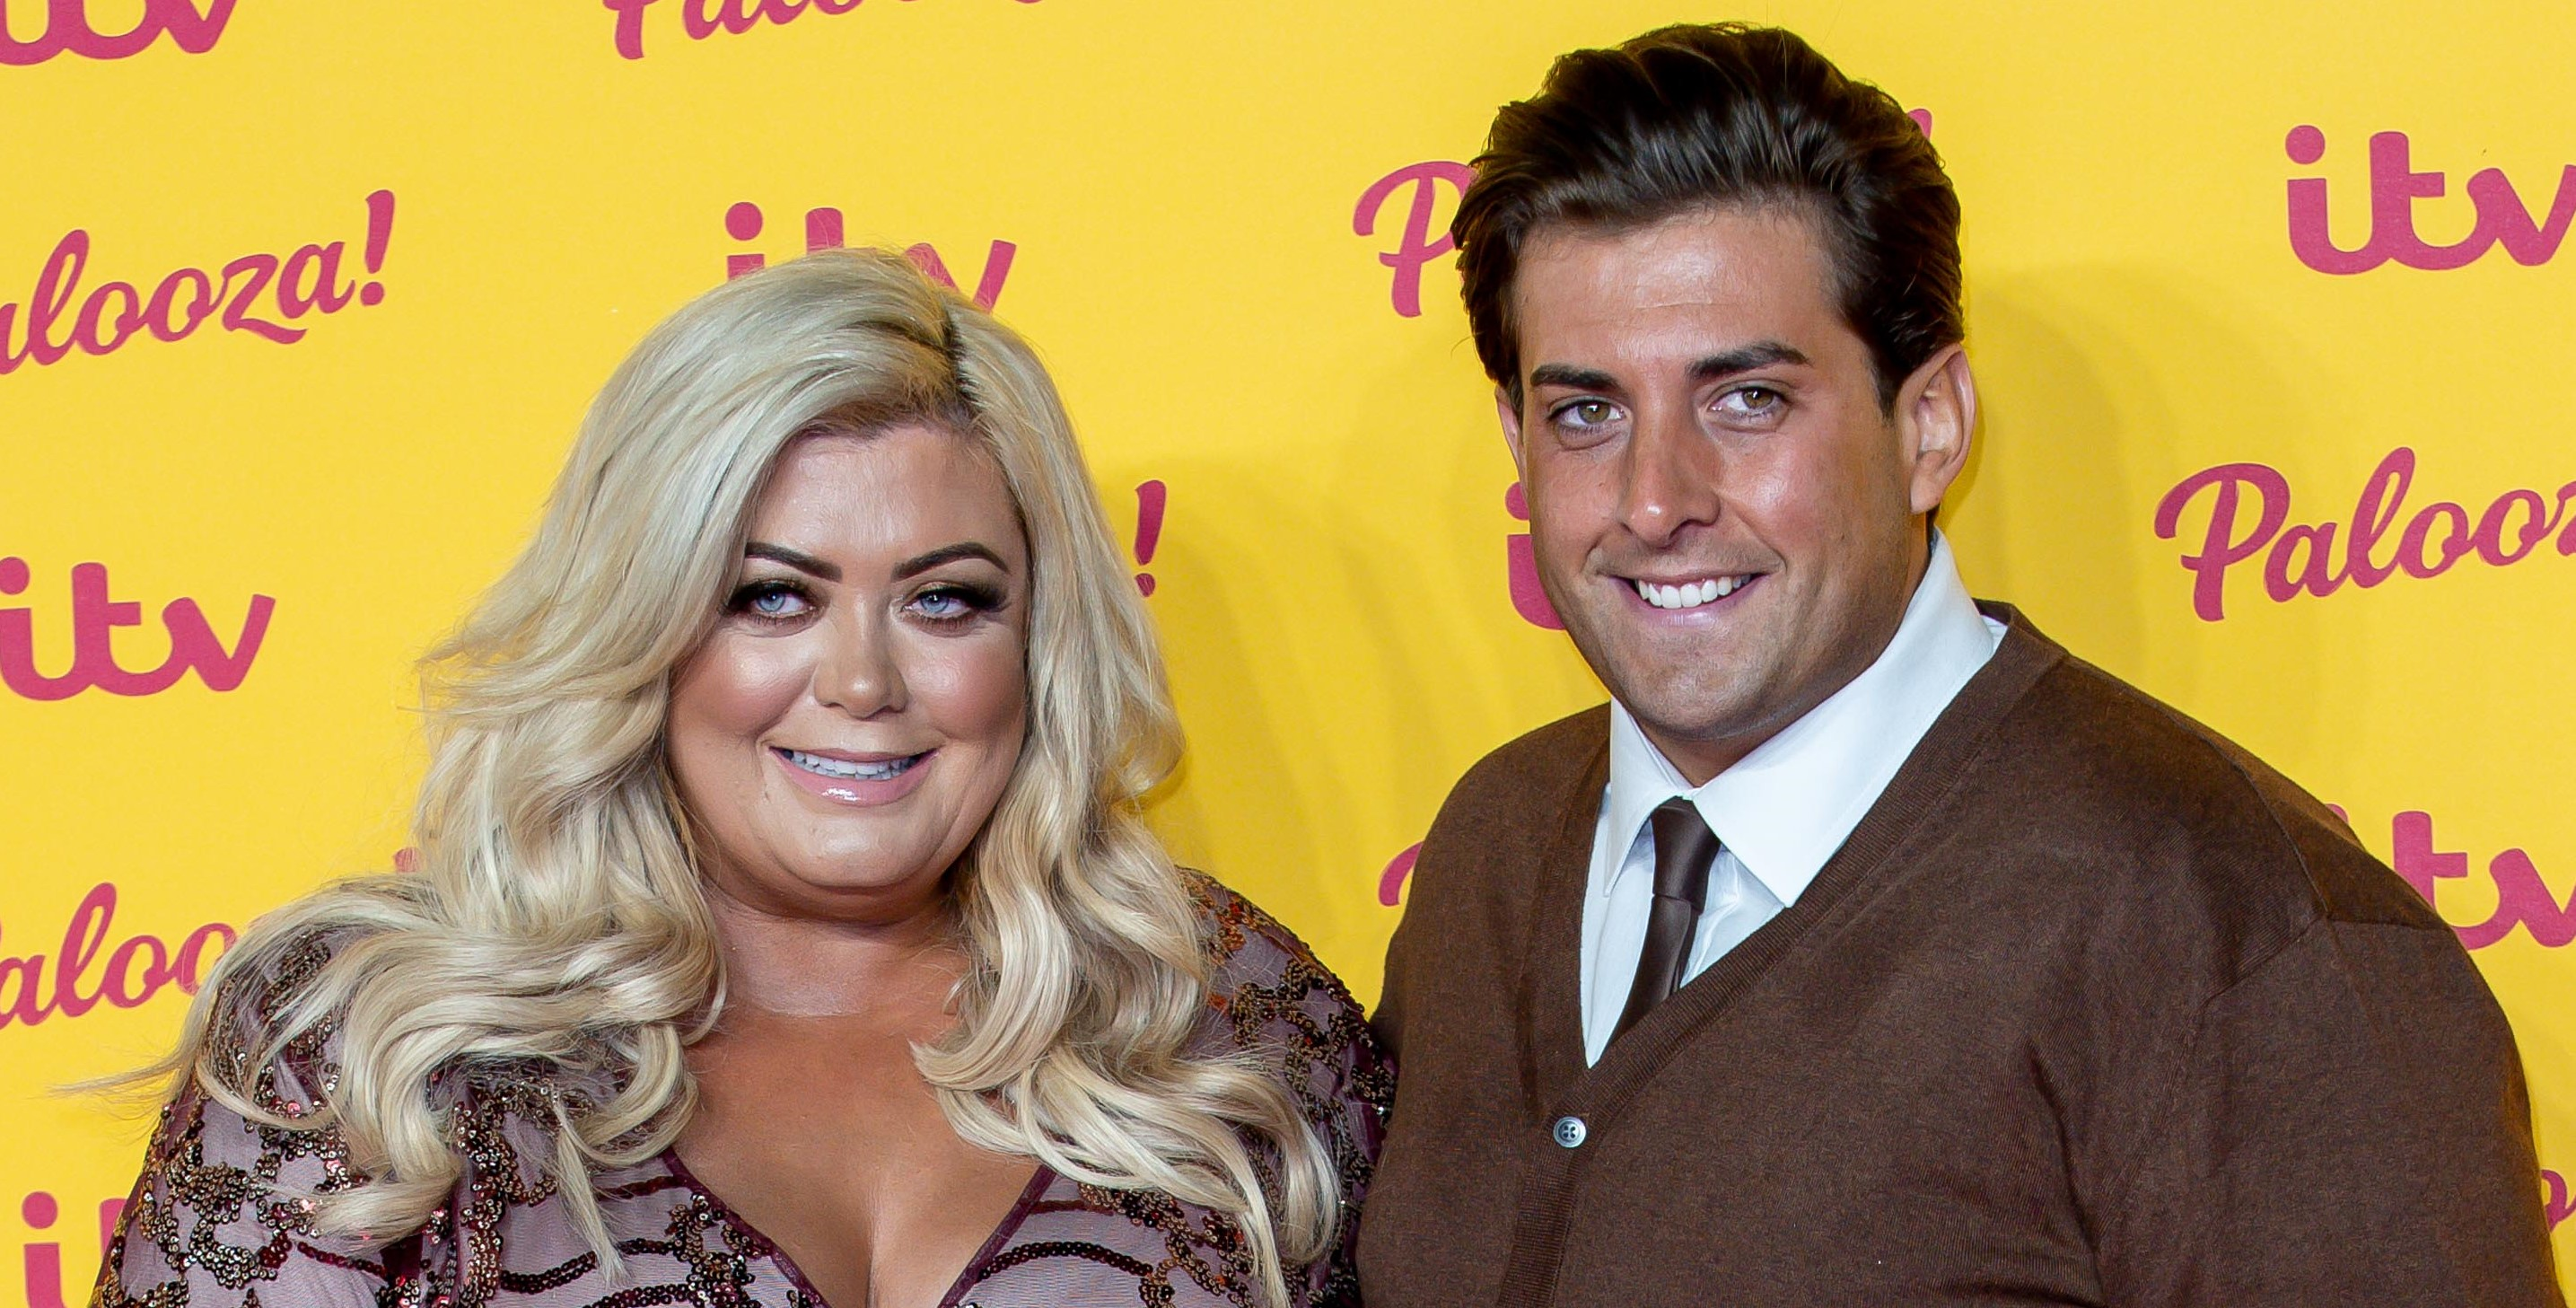 Gemma Collins reveals she 'hasn't stopped eating' after 'calling 999 over concerns for ex Arg'